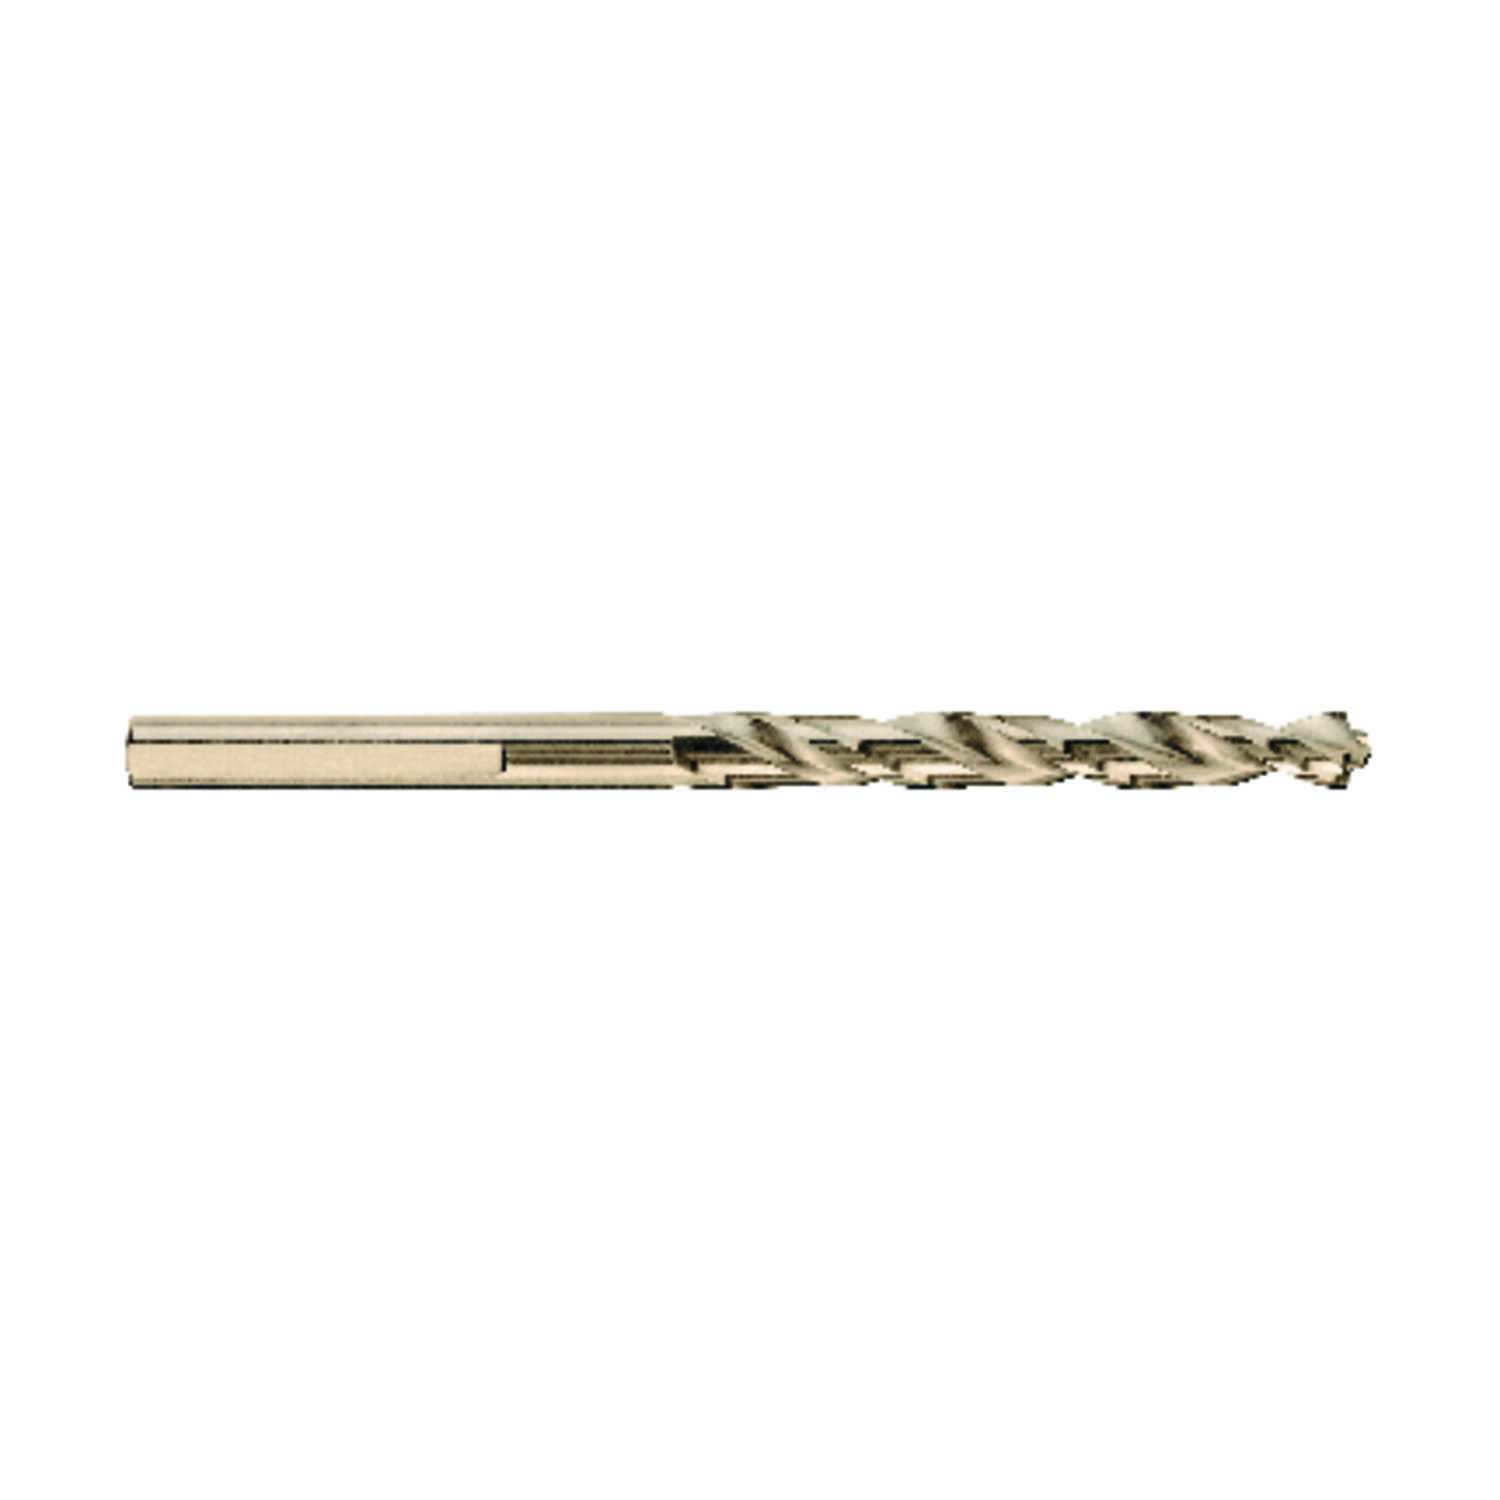 DeWalt  Pilot Point  11/32 in. Dia. x 4-3/4 in. L High Speed Steel  Split Point Drill Bit  3-Flat Sh